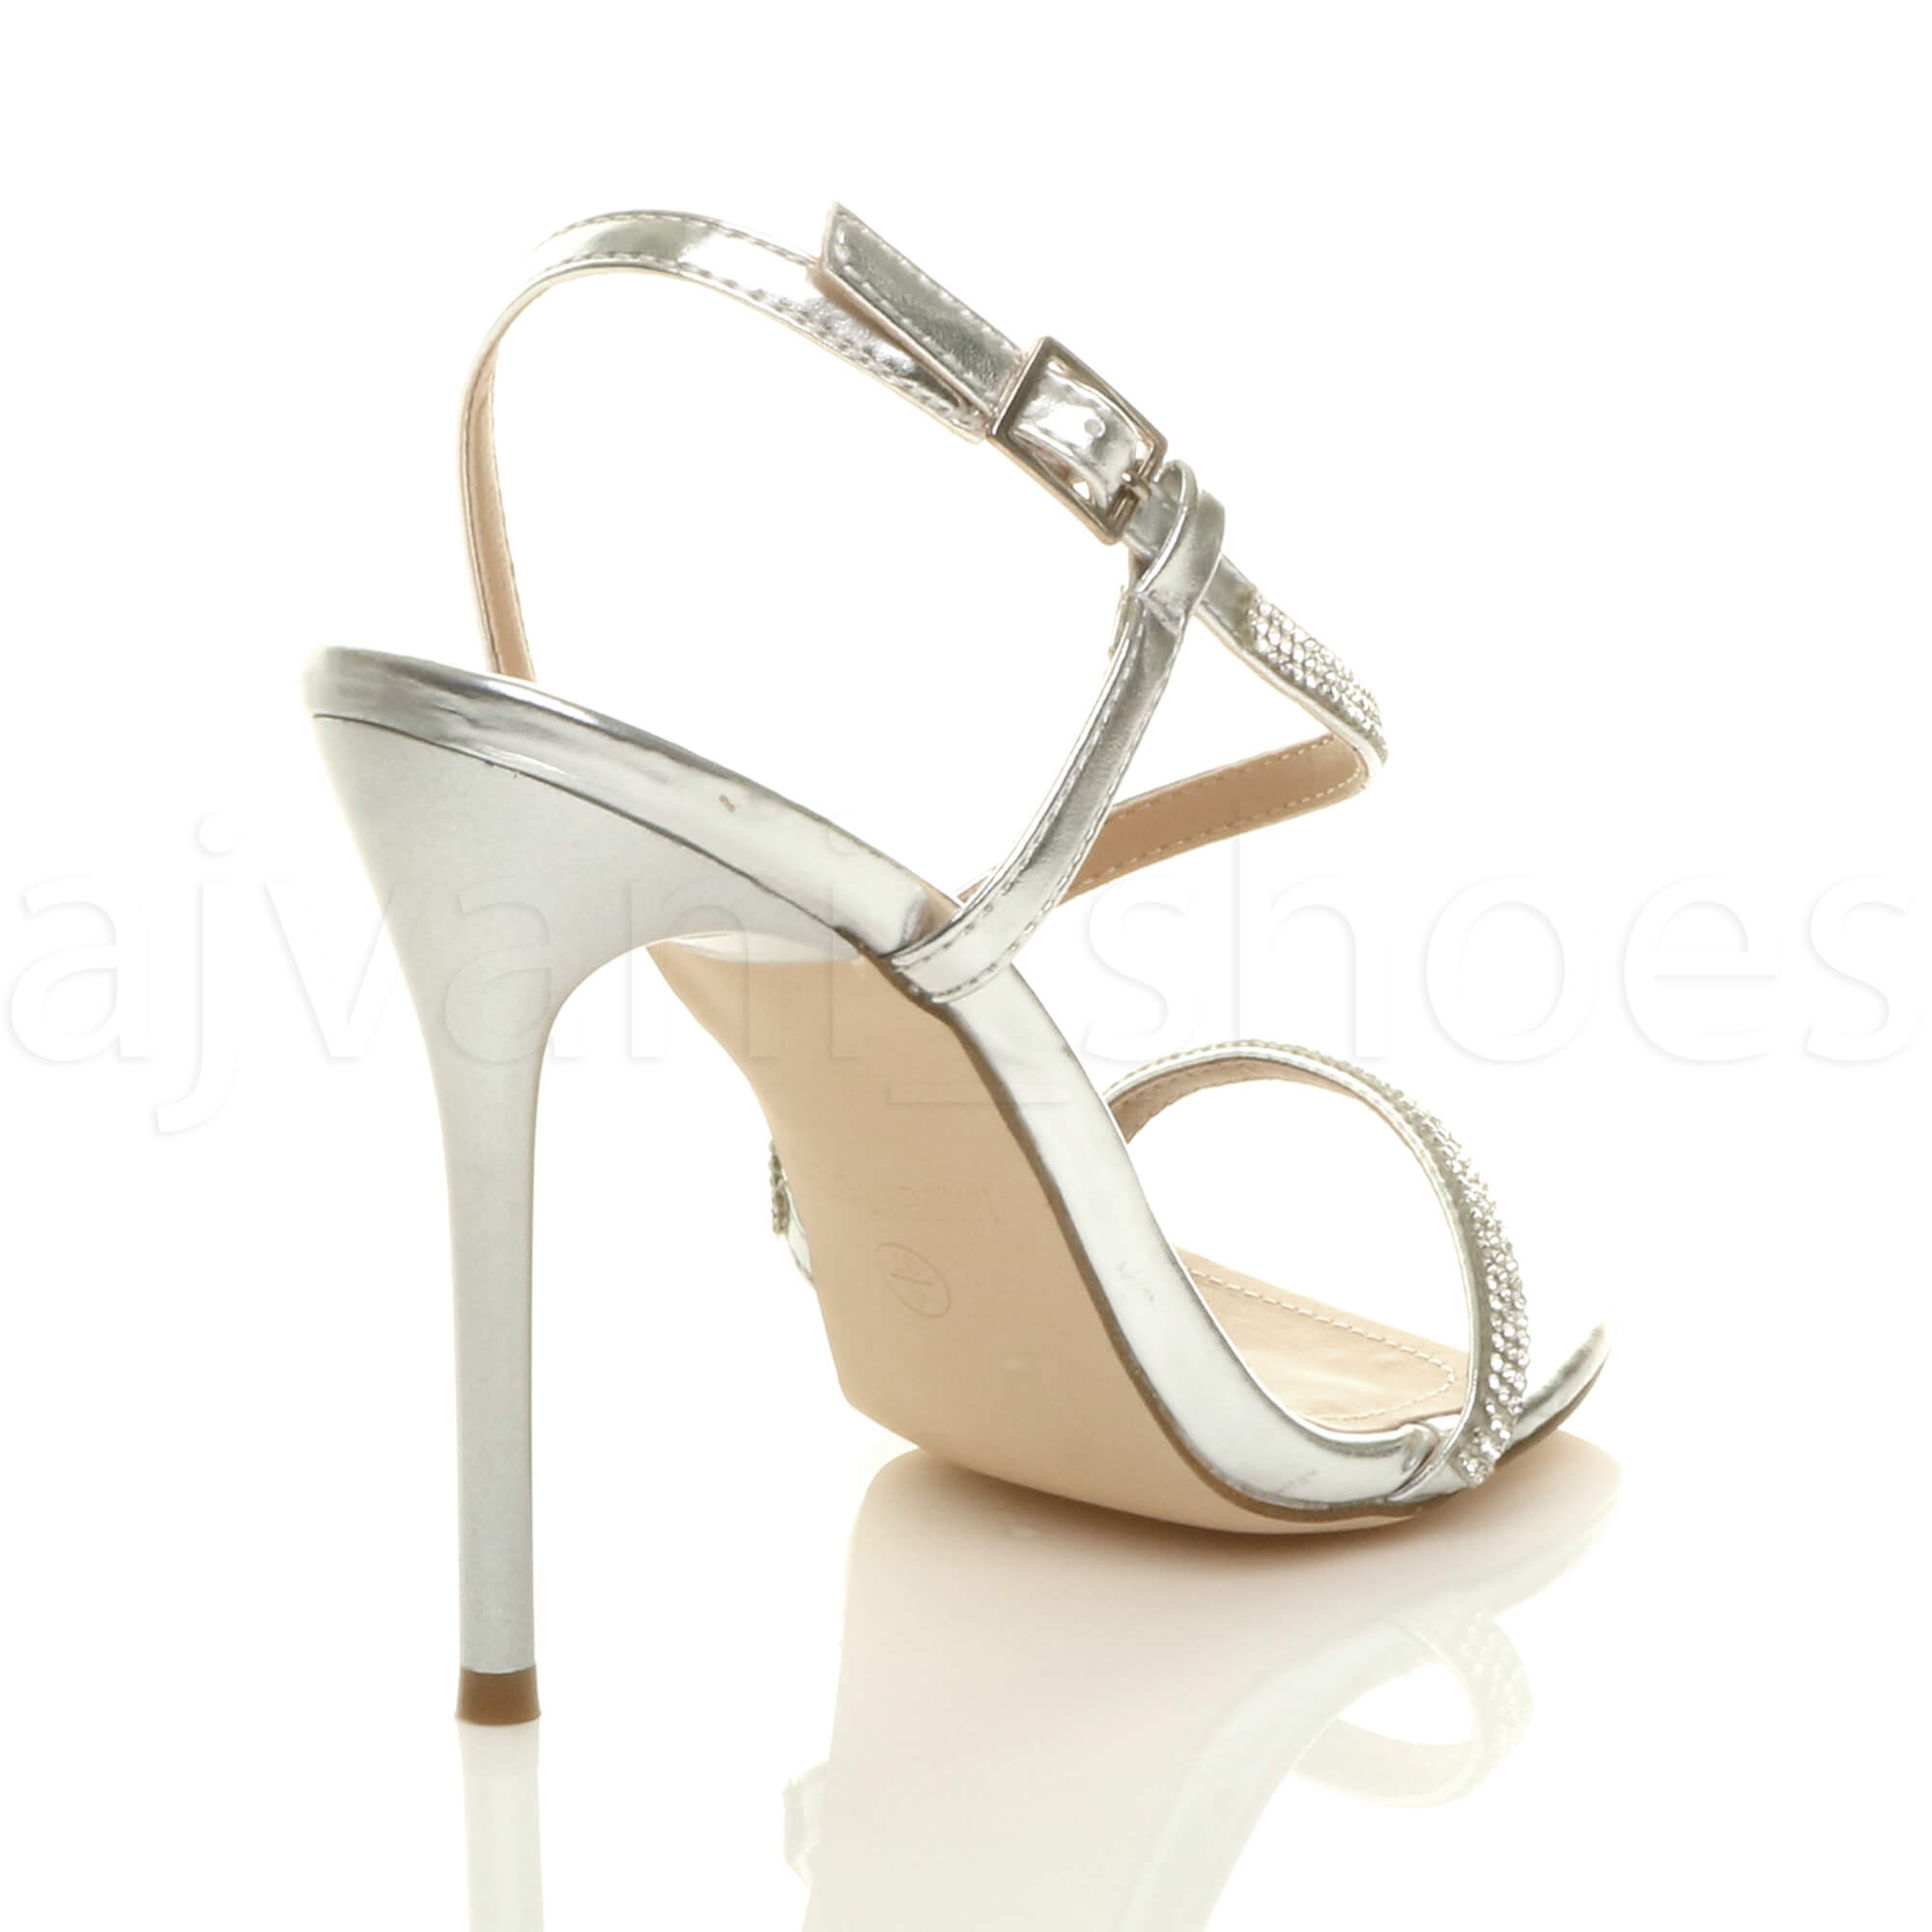 WOMENS-LADIES-HIGH-HEEL-DIAMANTE-BARELY-THERE-STRAPPY-EVENING-SANDALS-SIZE thumbnail 21